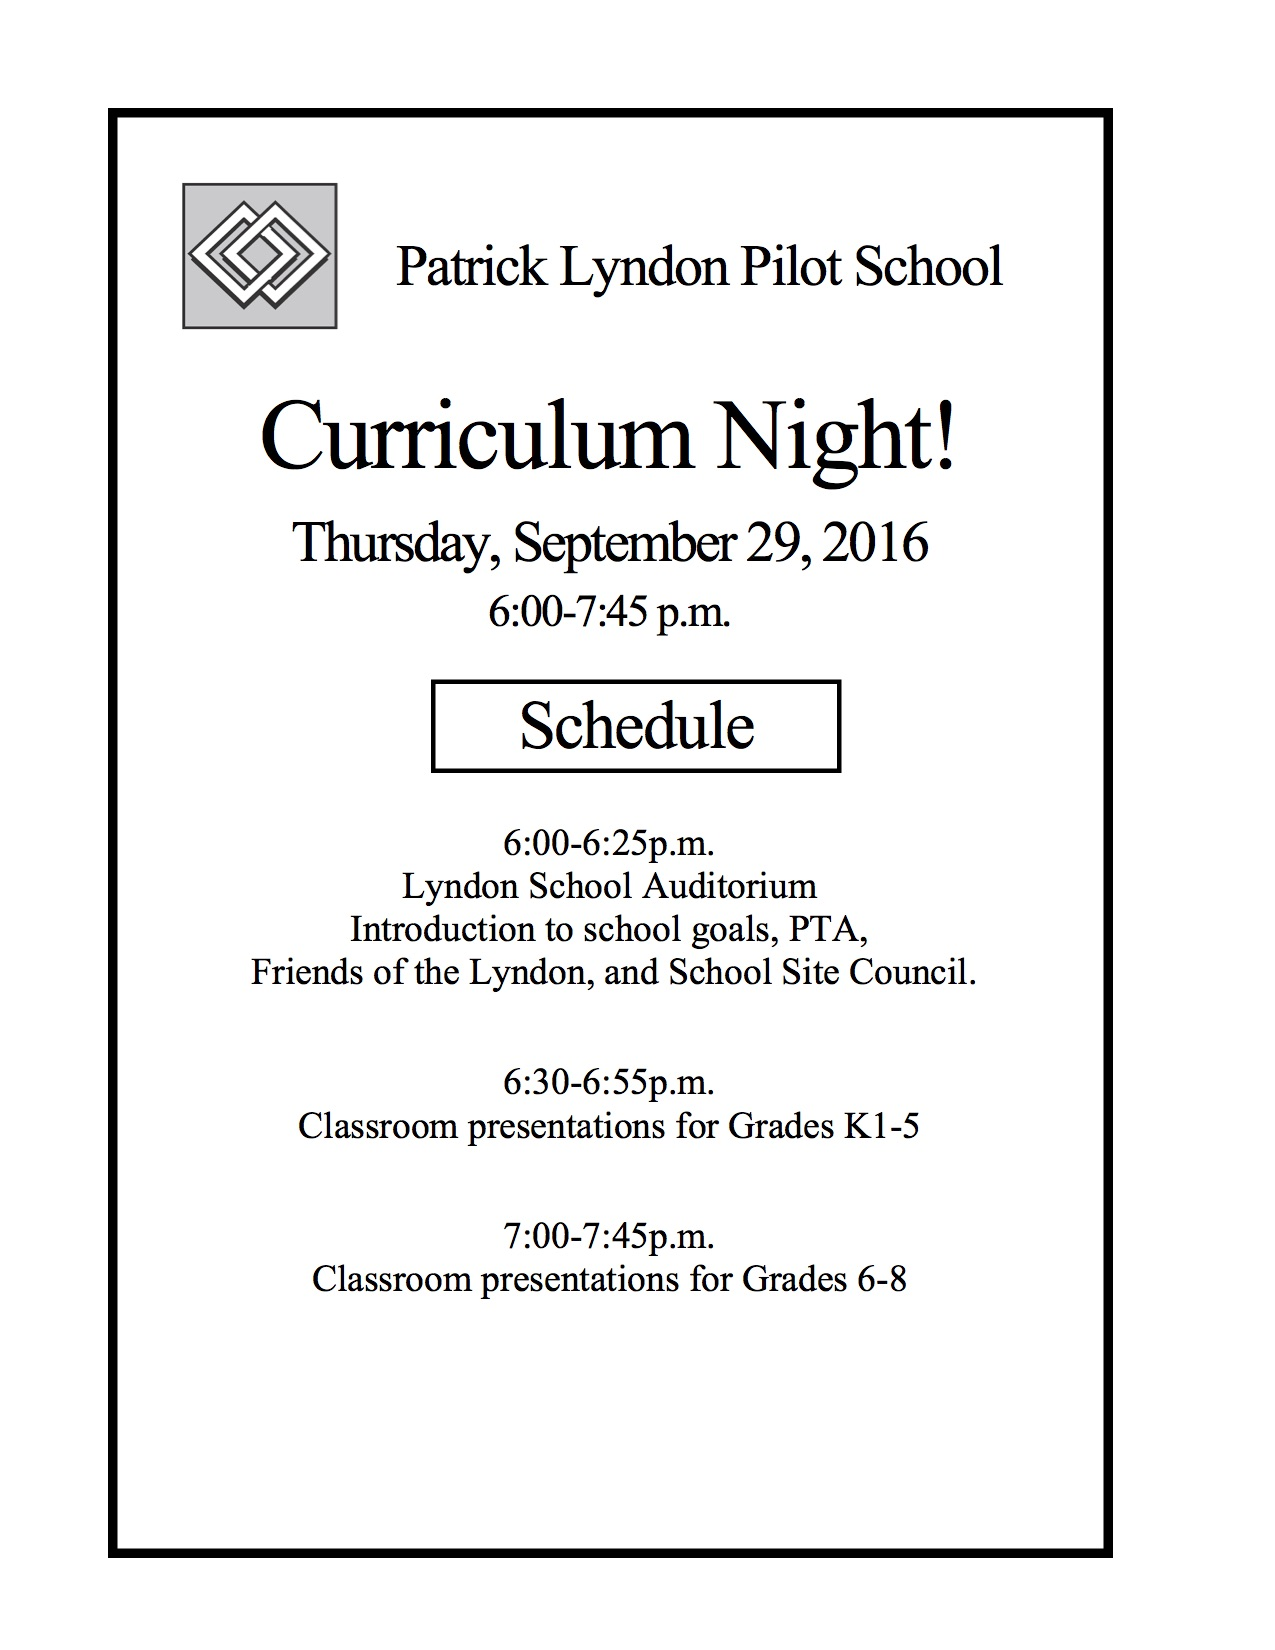 Curriculum Night - The Patrick Lyndon School